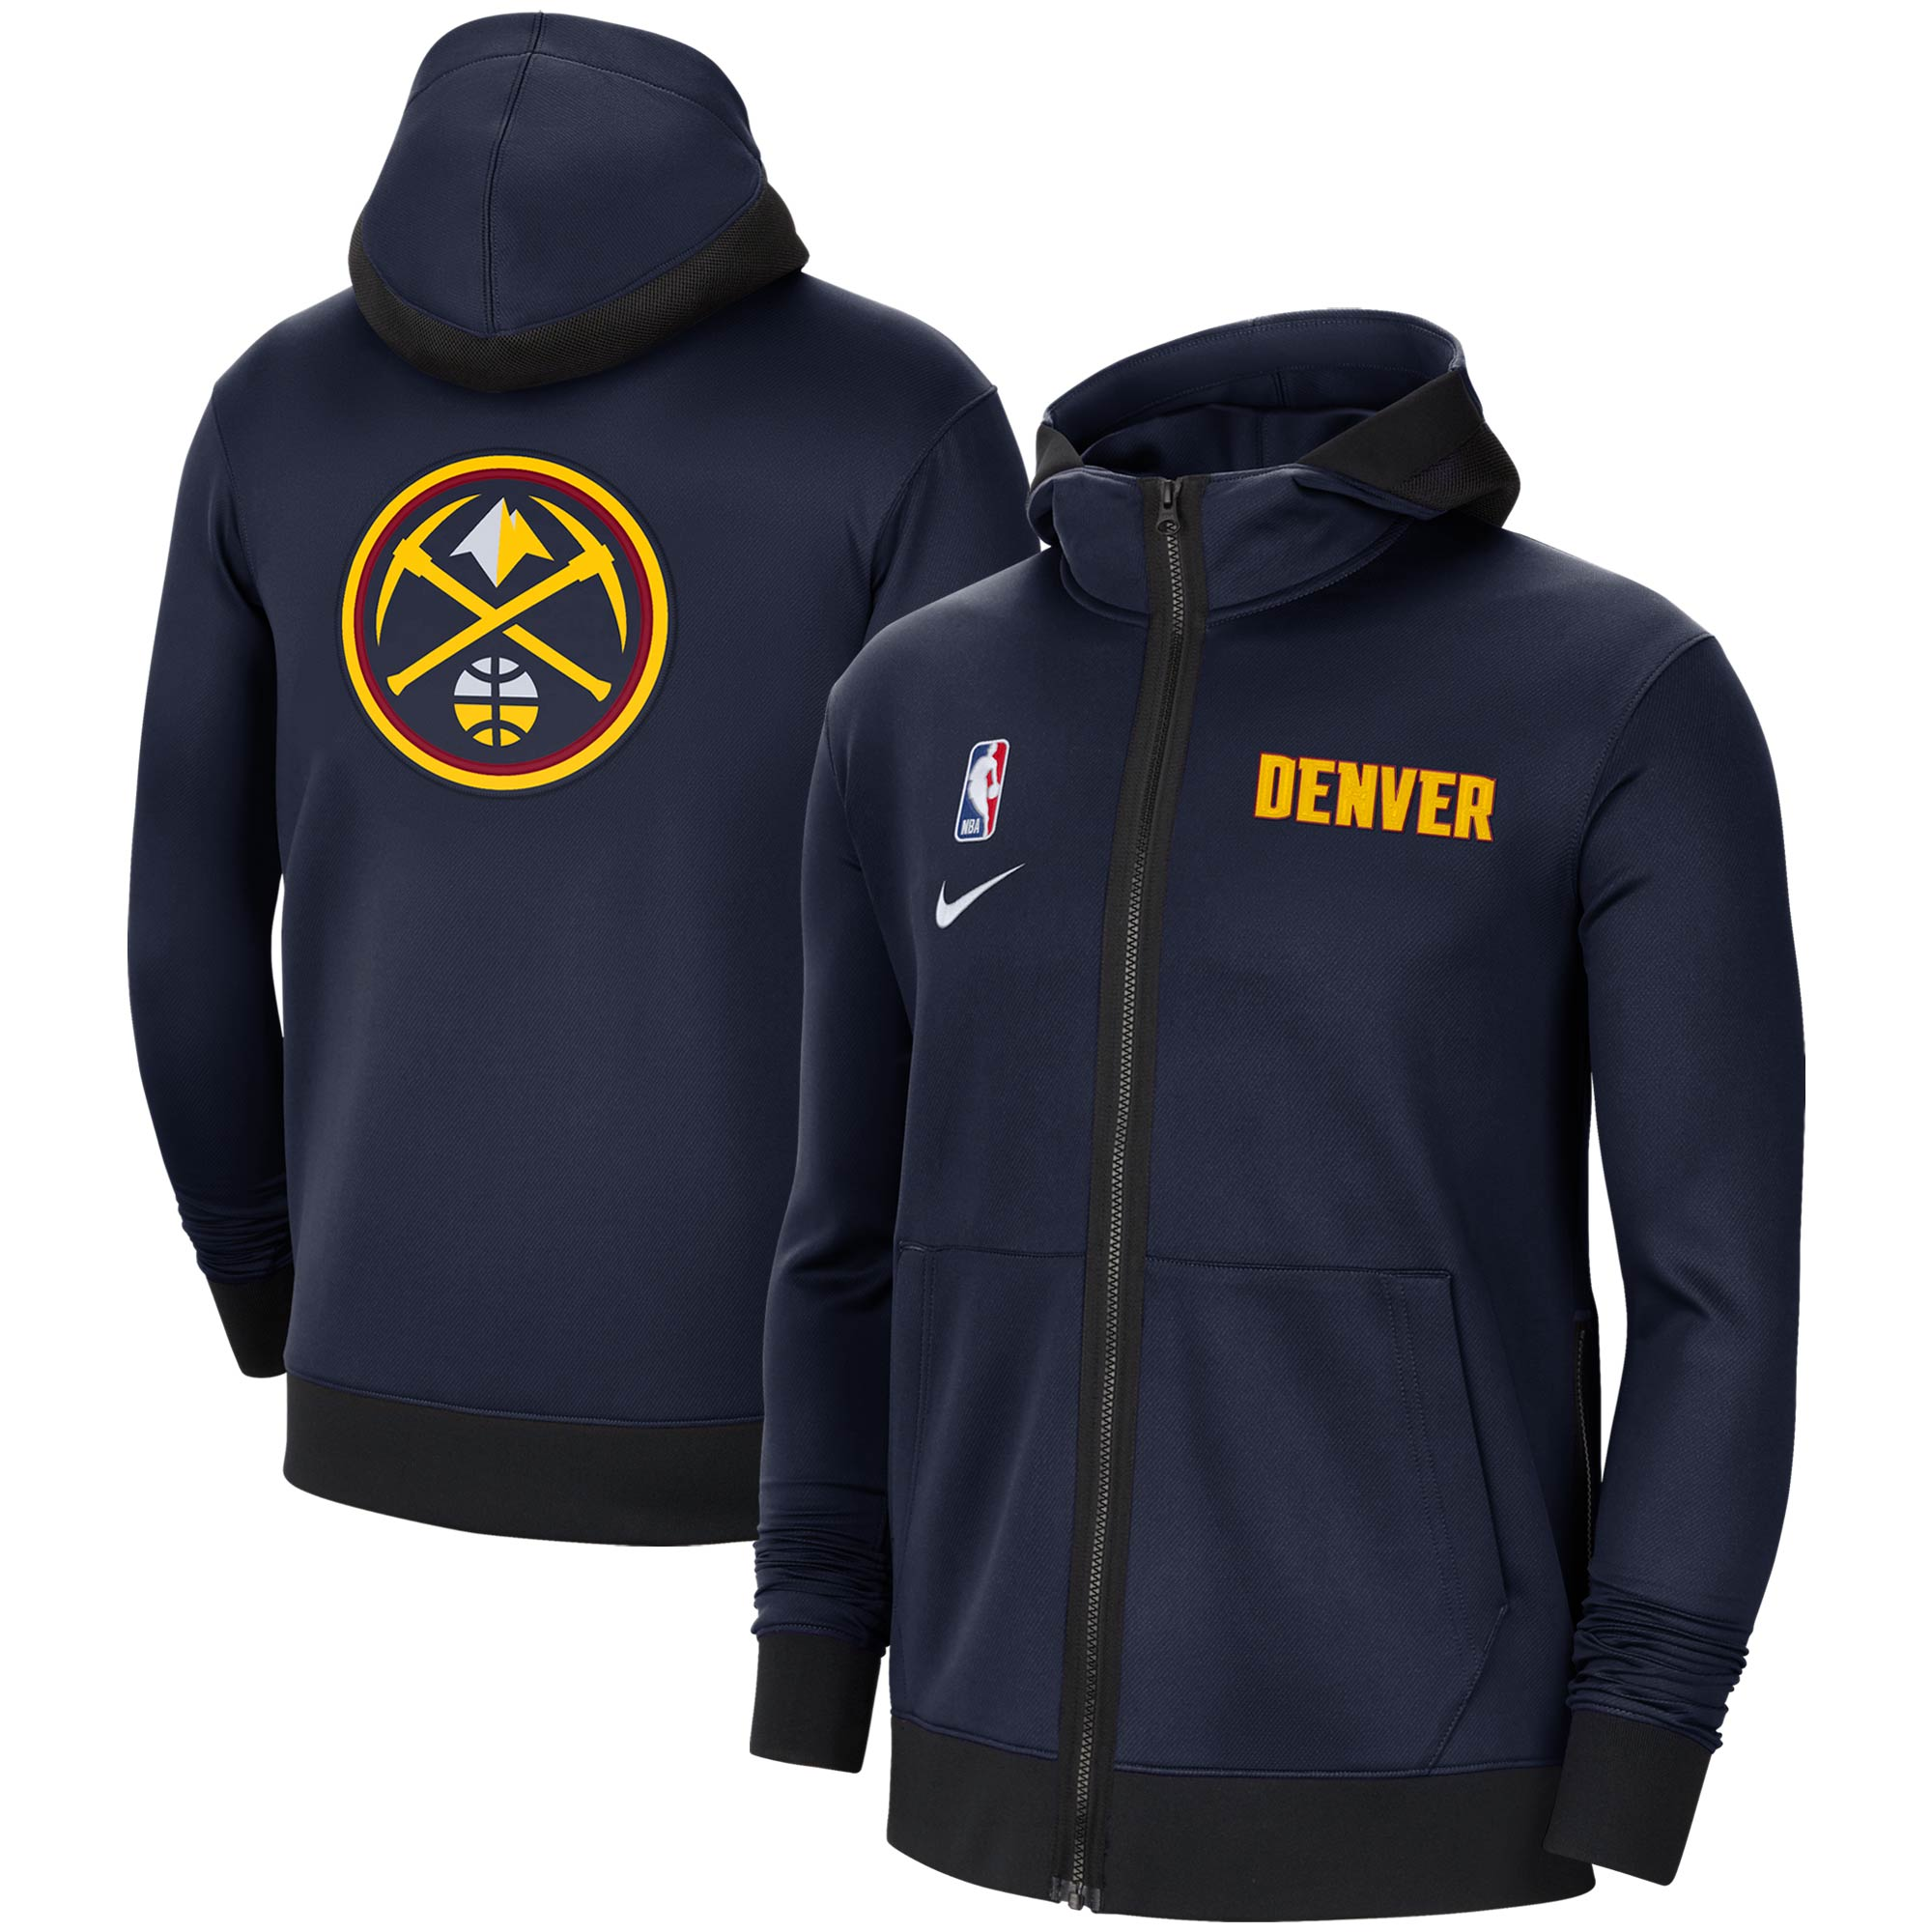 Denver Nuggets Nike Authentic Showtime Performance Full-Zip Hoodie Jacket - Navy